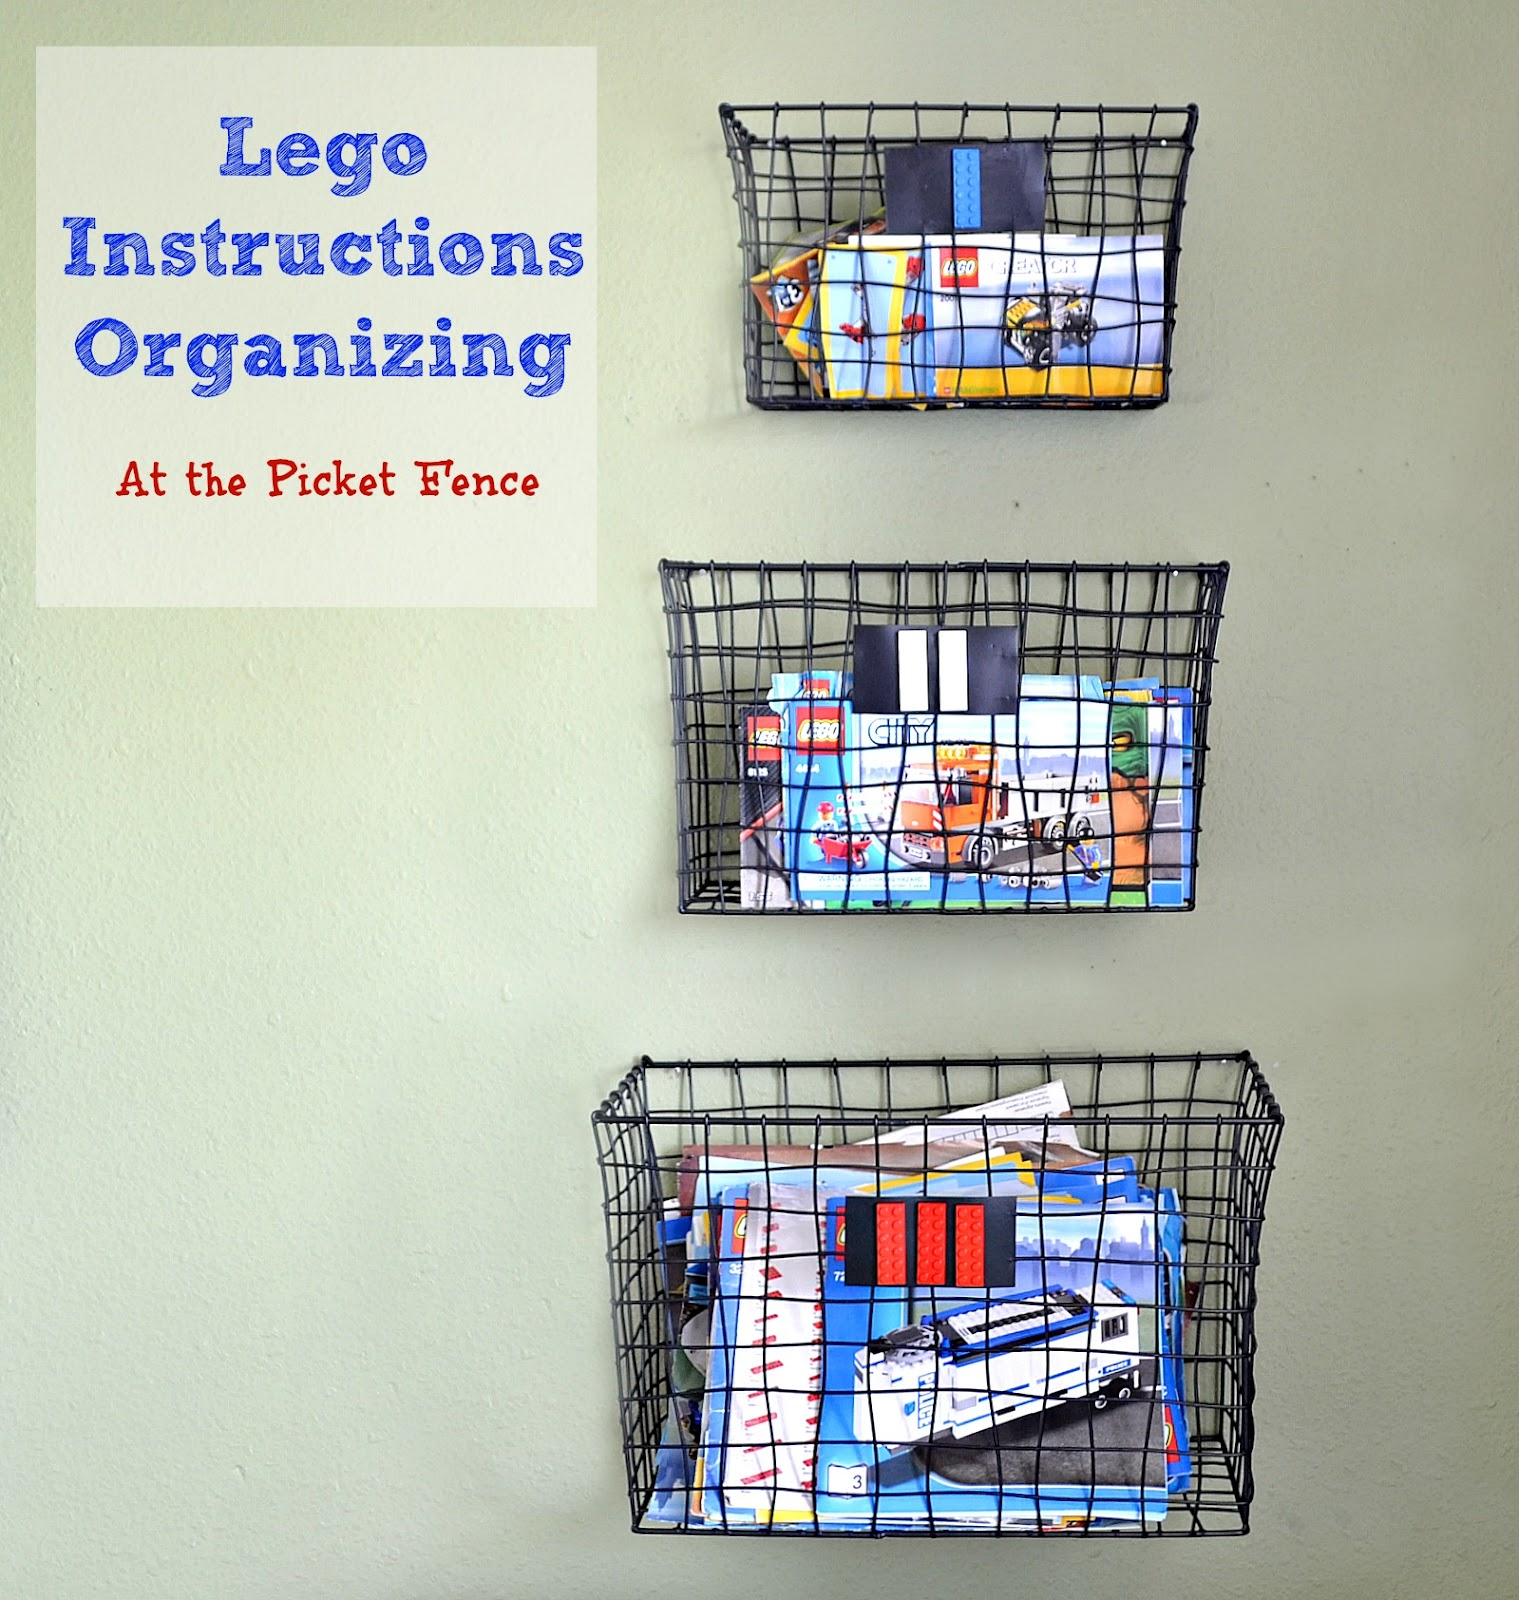 Organizing Lego Instructions At The Picket Fence